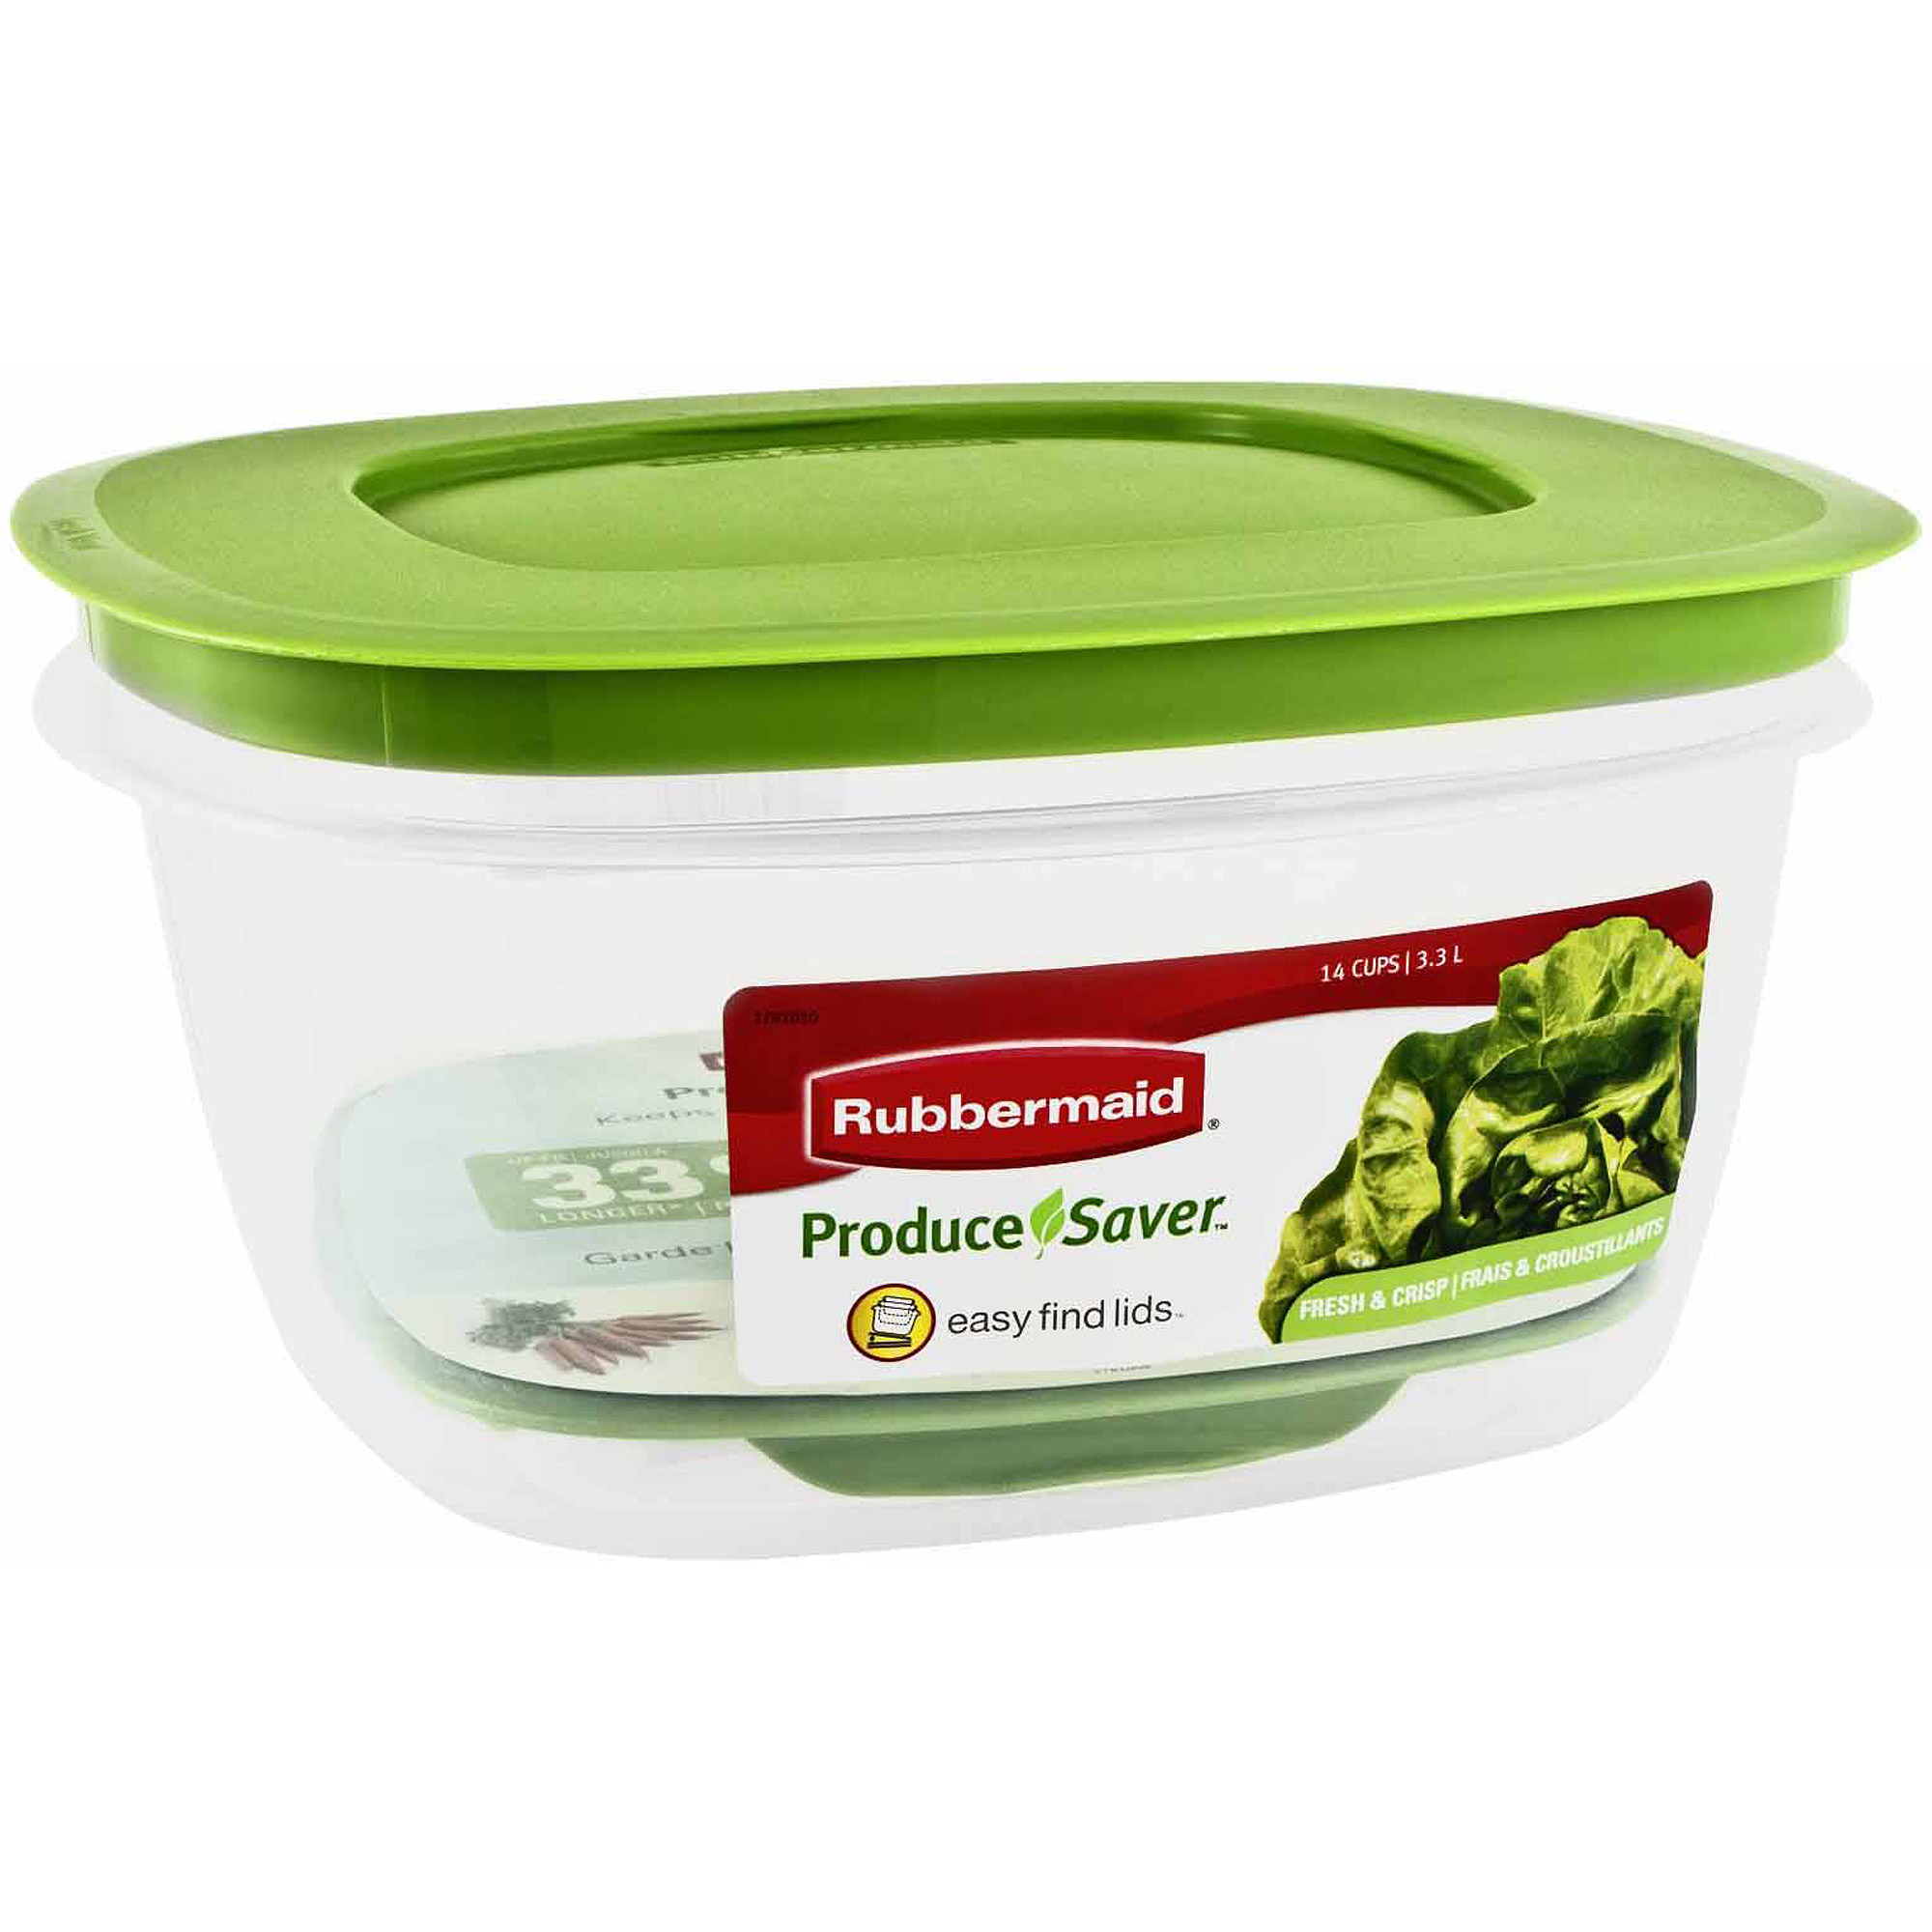 Rubbermaid Produce Savers 14 Cup